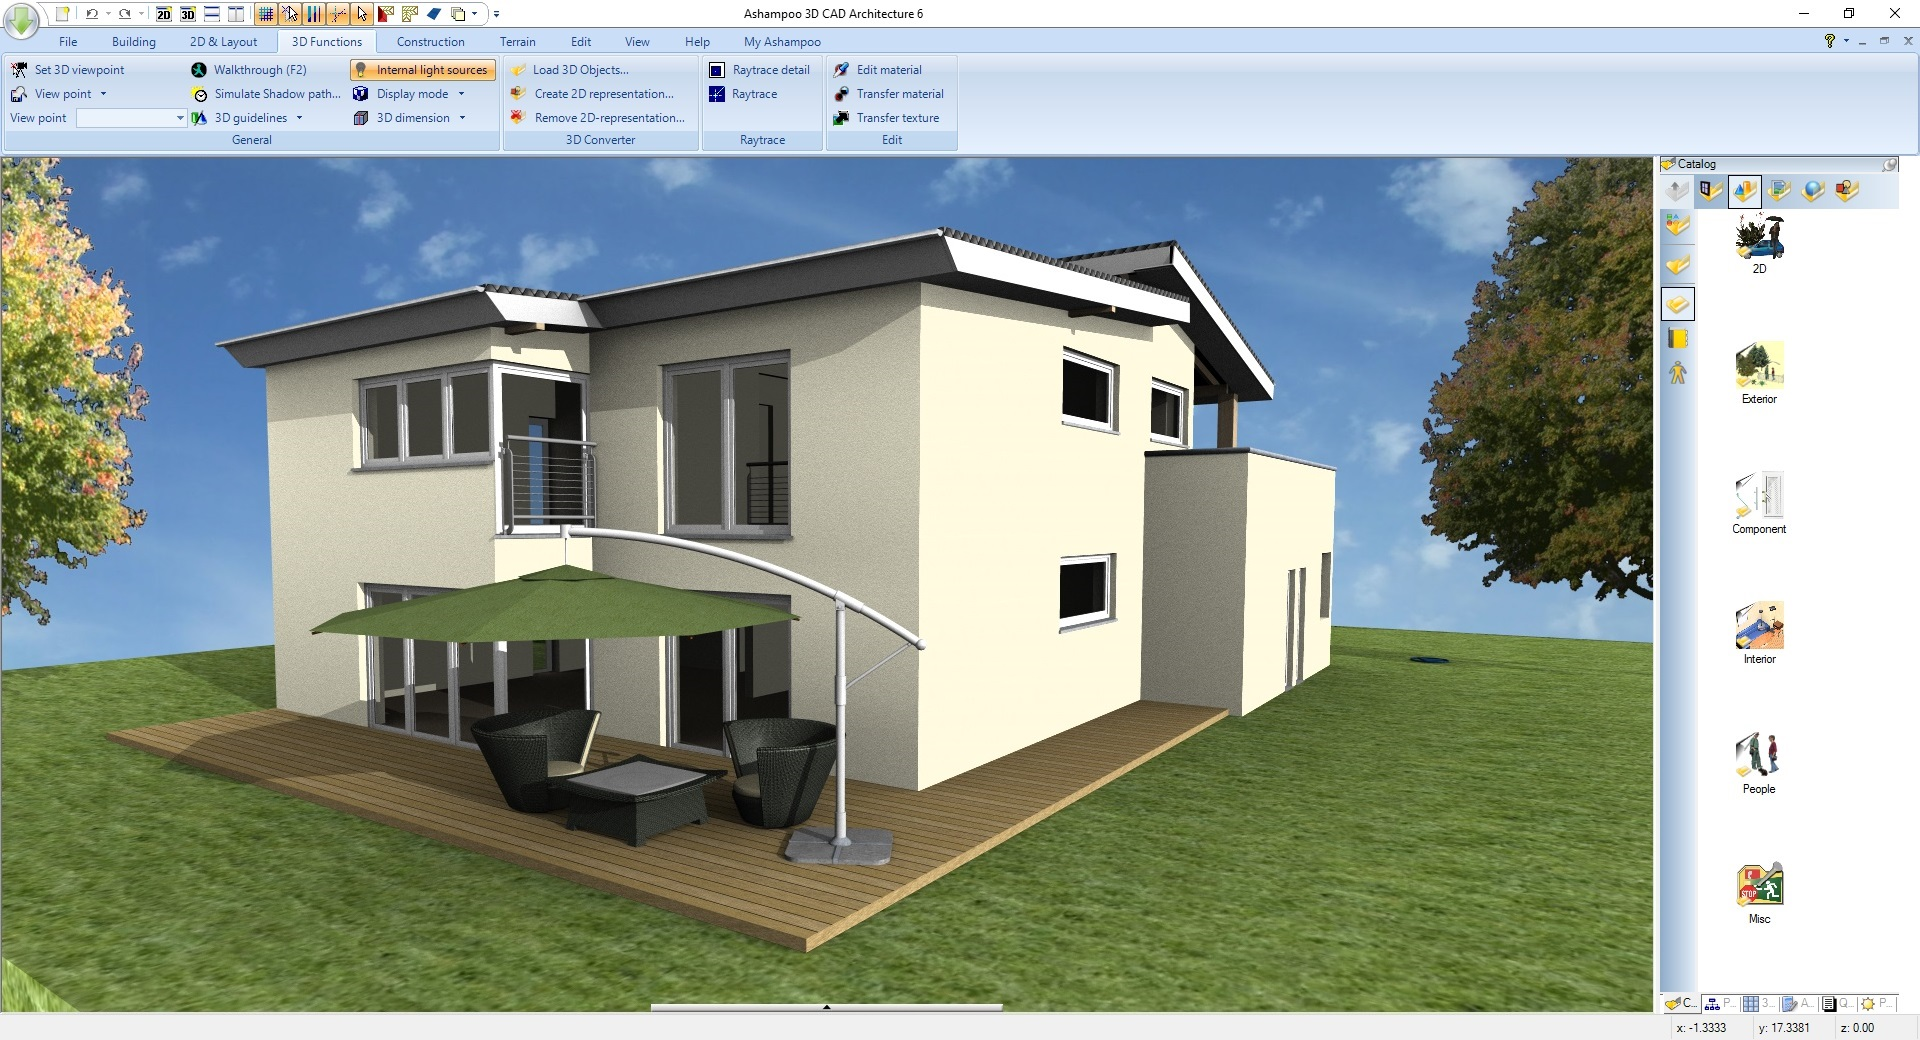 Ashampoo 3d cad architecture 6 for Cad house